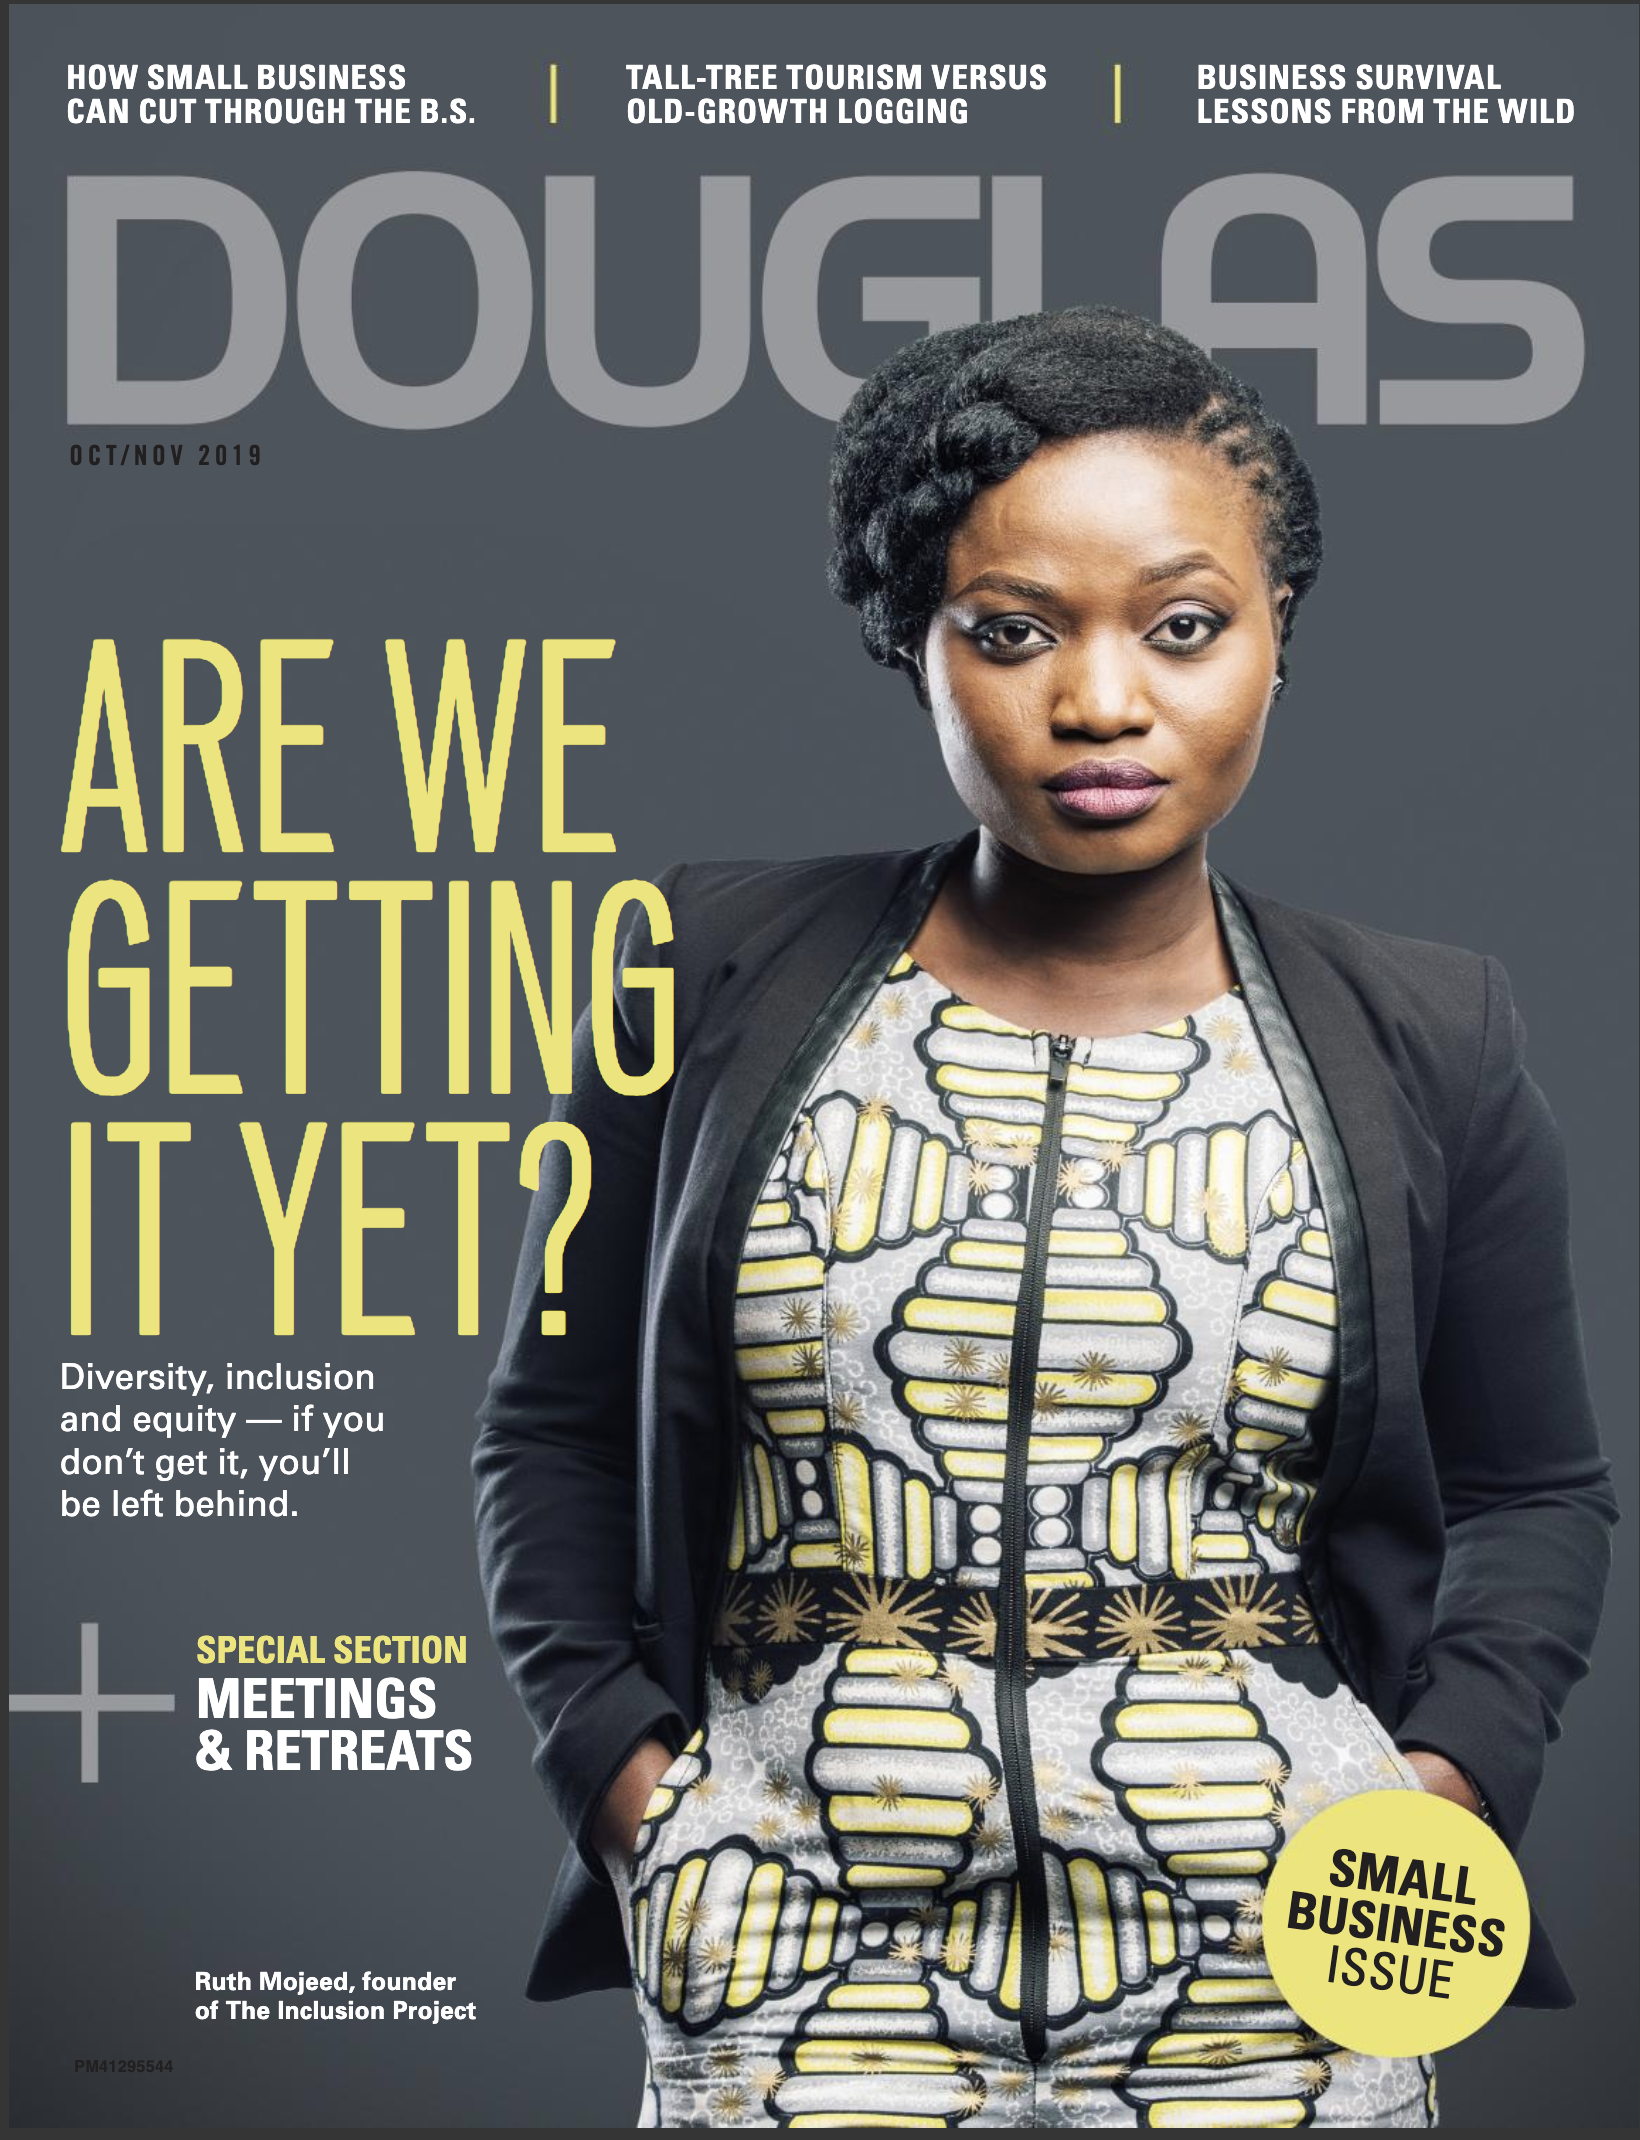 Douglas Oct/Nov 2019 cover with Ruth Mojeed, founder of The Inclusion Project